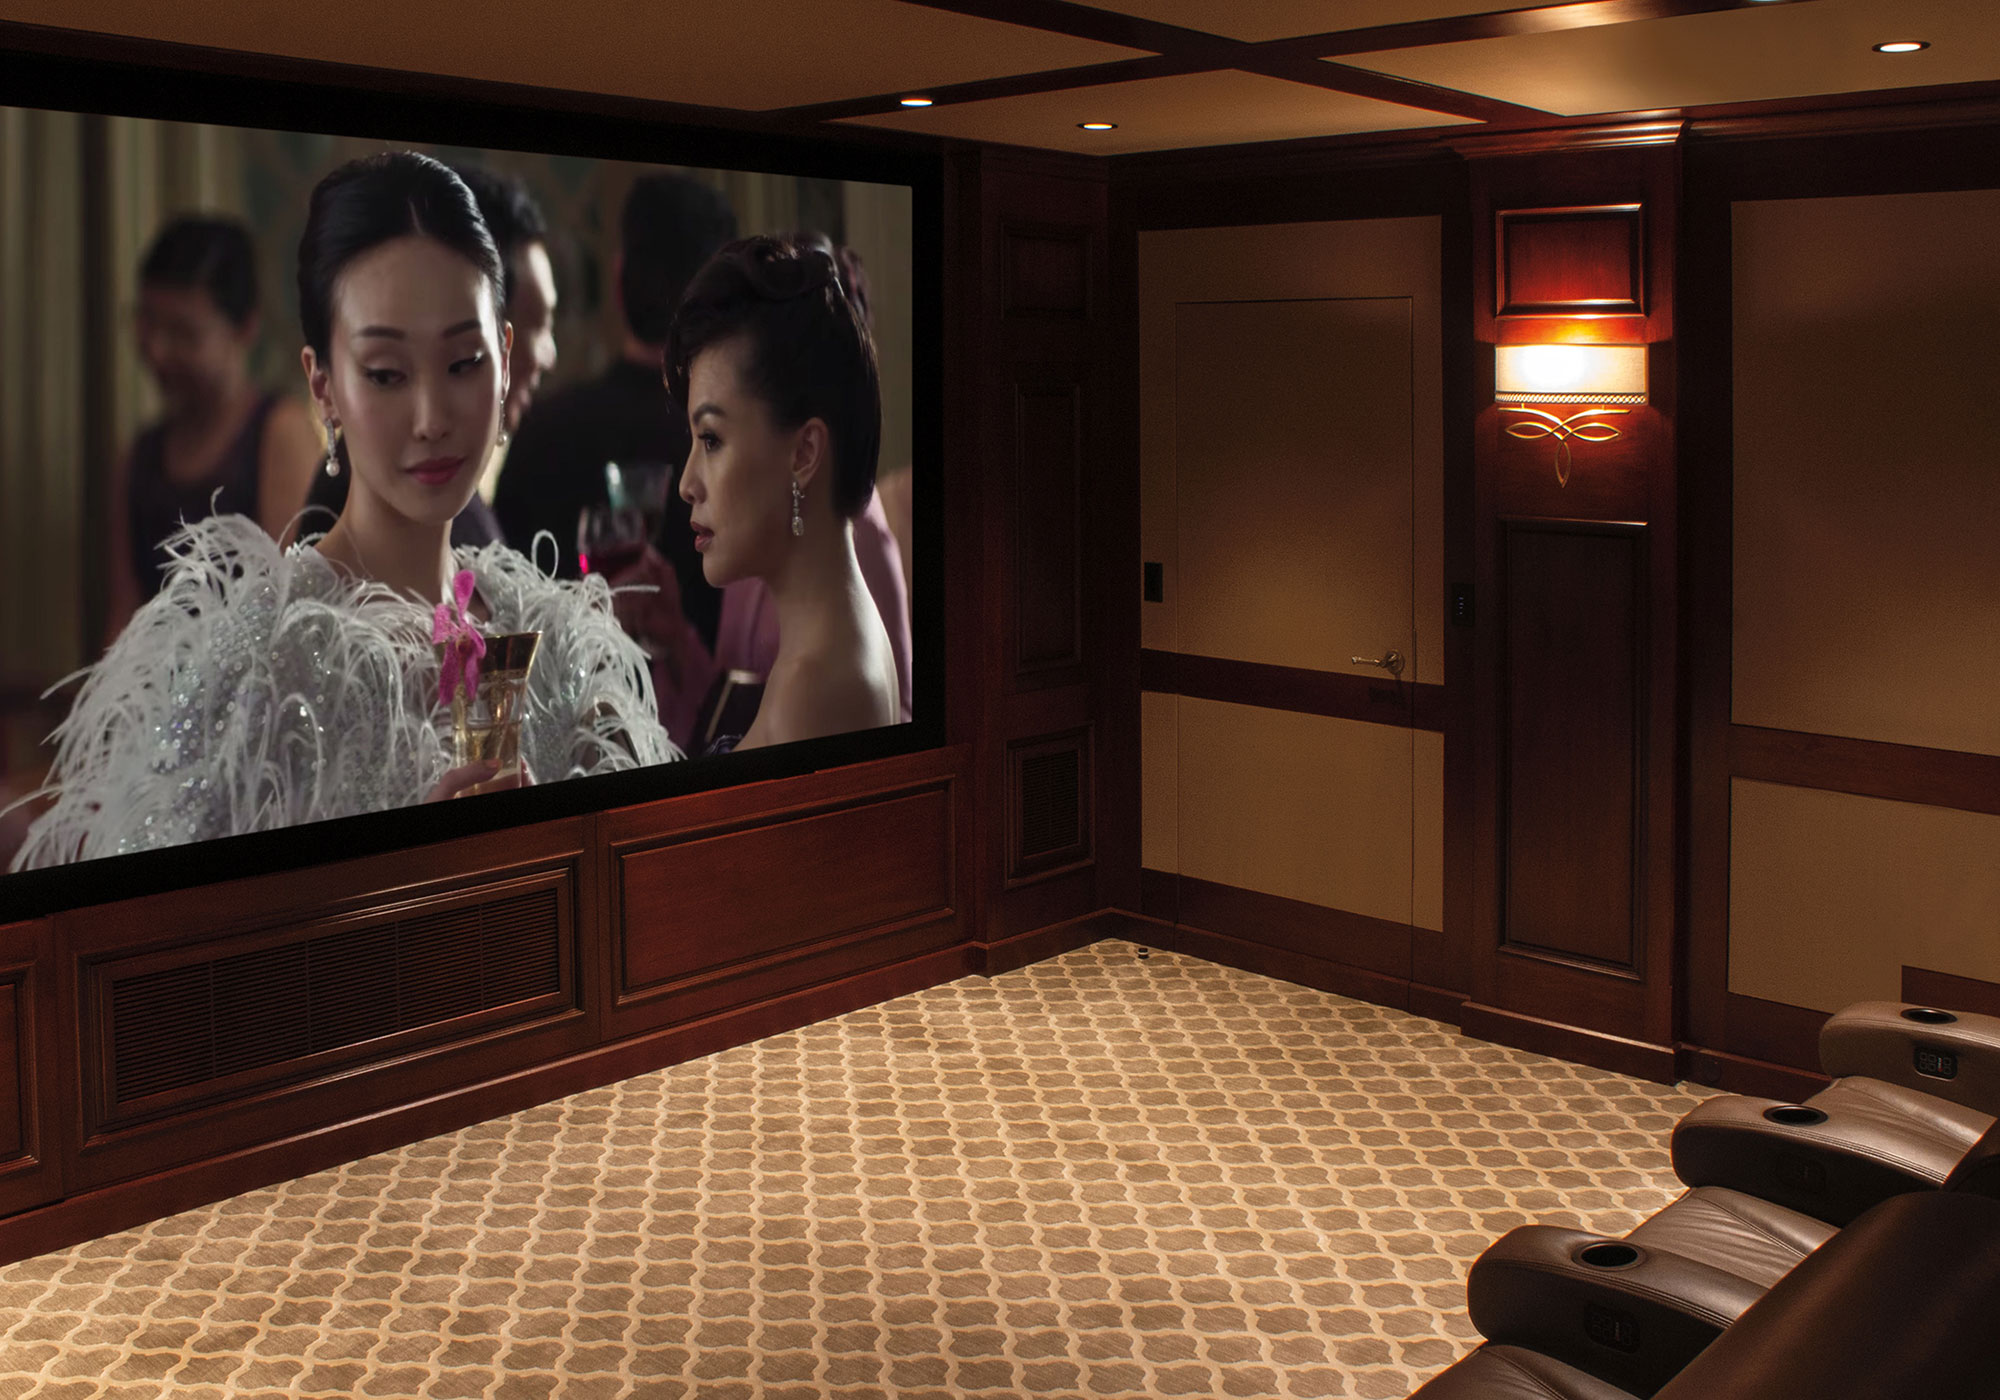 theater, projection system, movie screen, speakers, in-wall speakers, surround sound